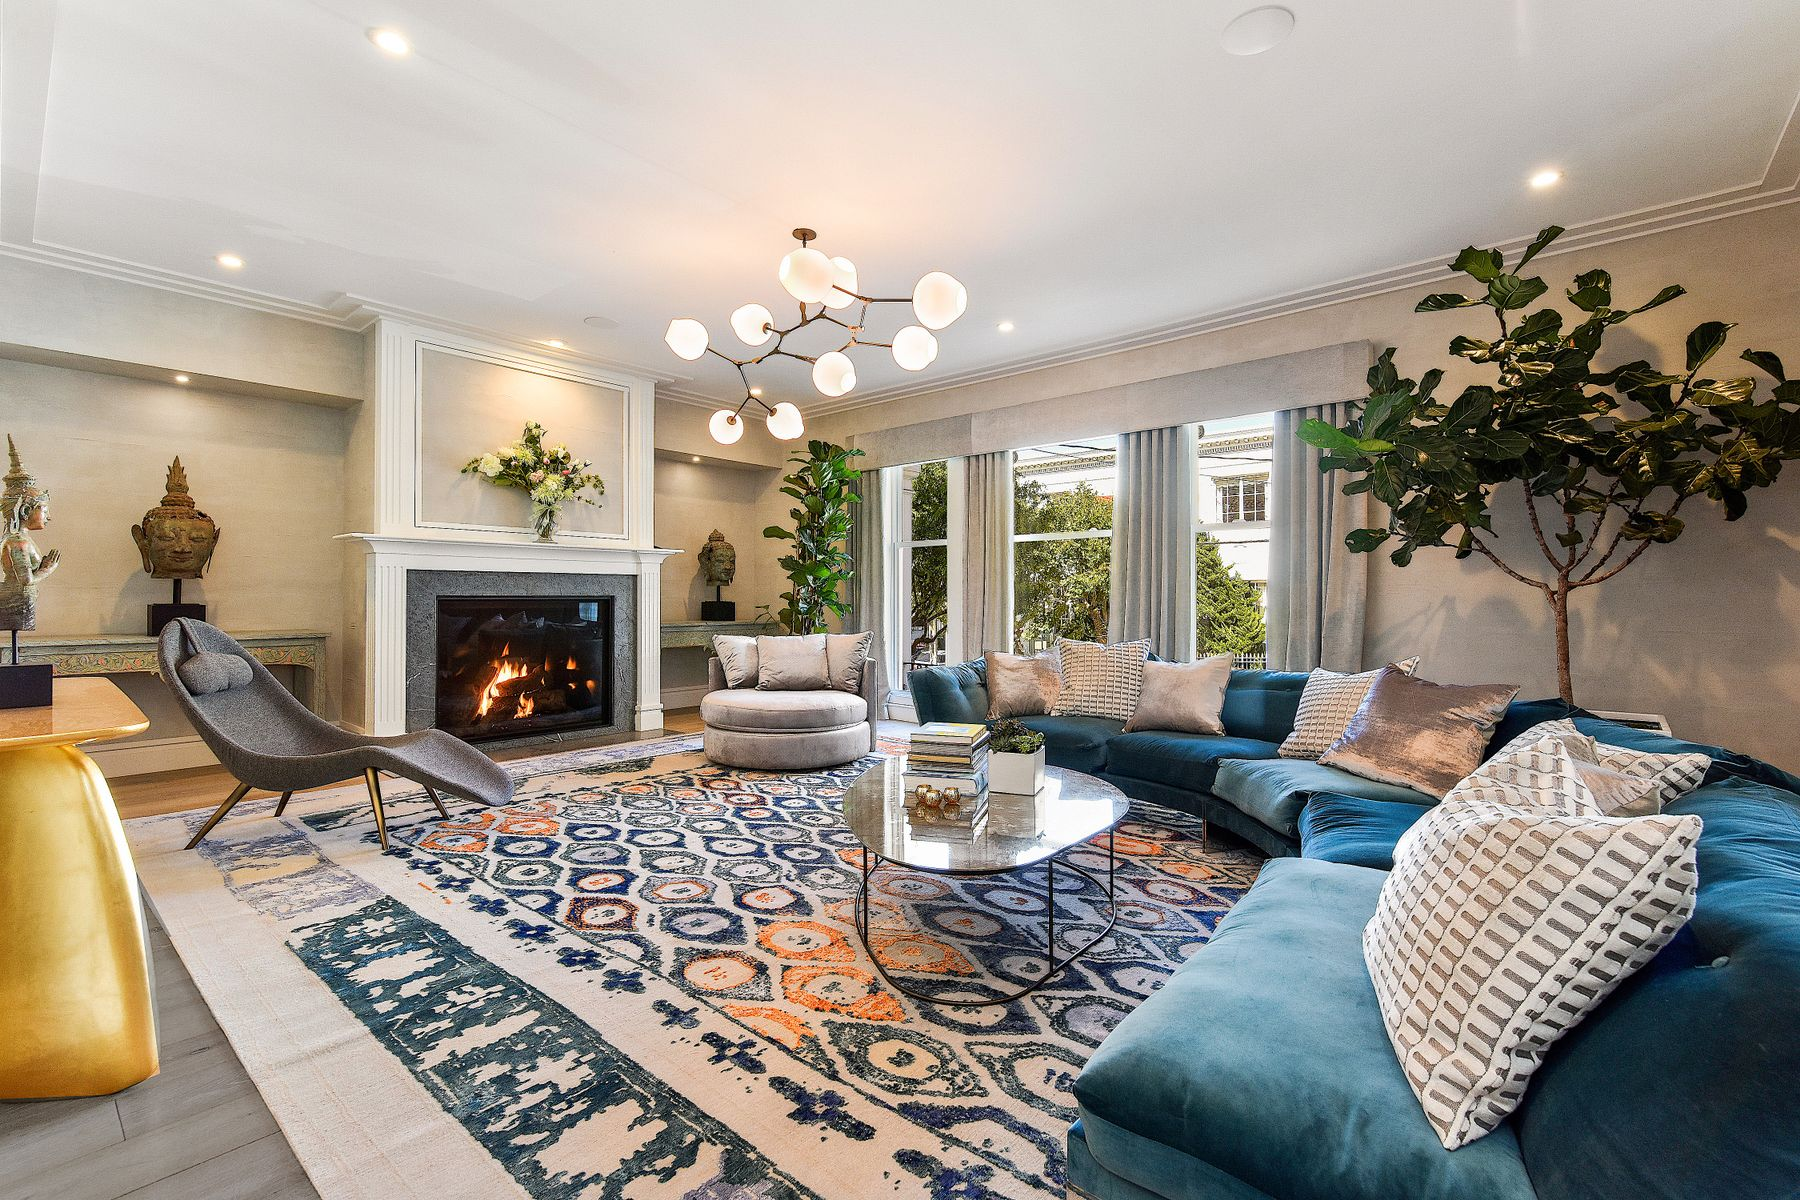 Single Family Homes for Sale at Neo-Classical Pacific Heights Residence 2555 Webster St San Francisco, California 94115 United States